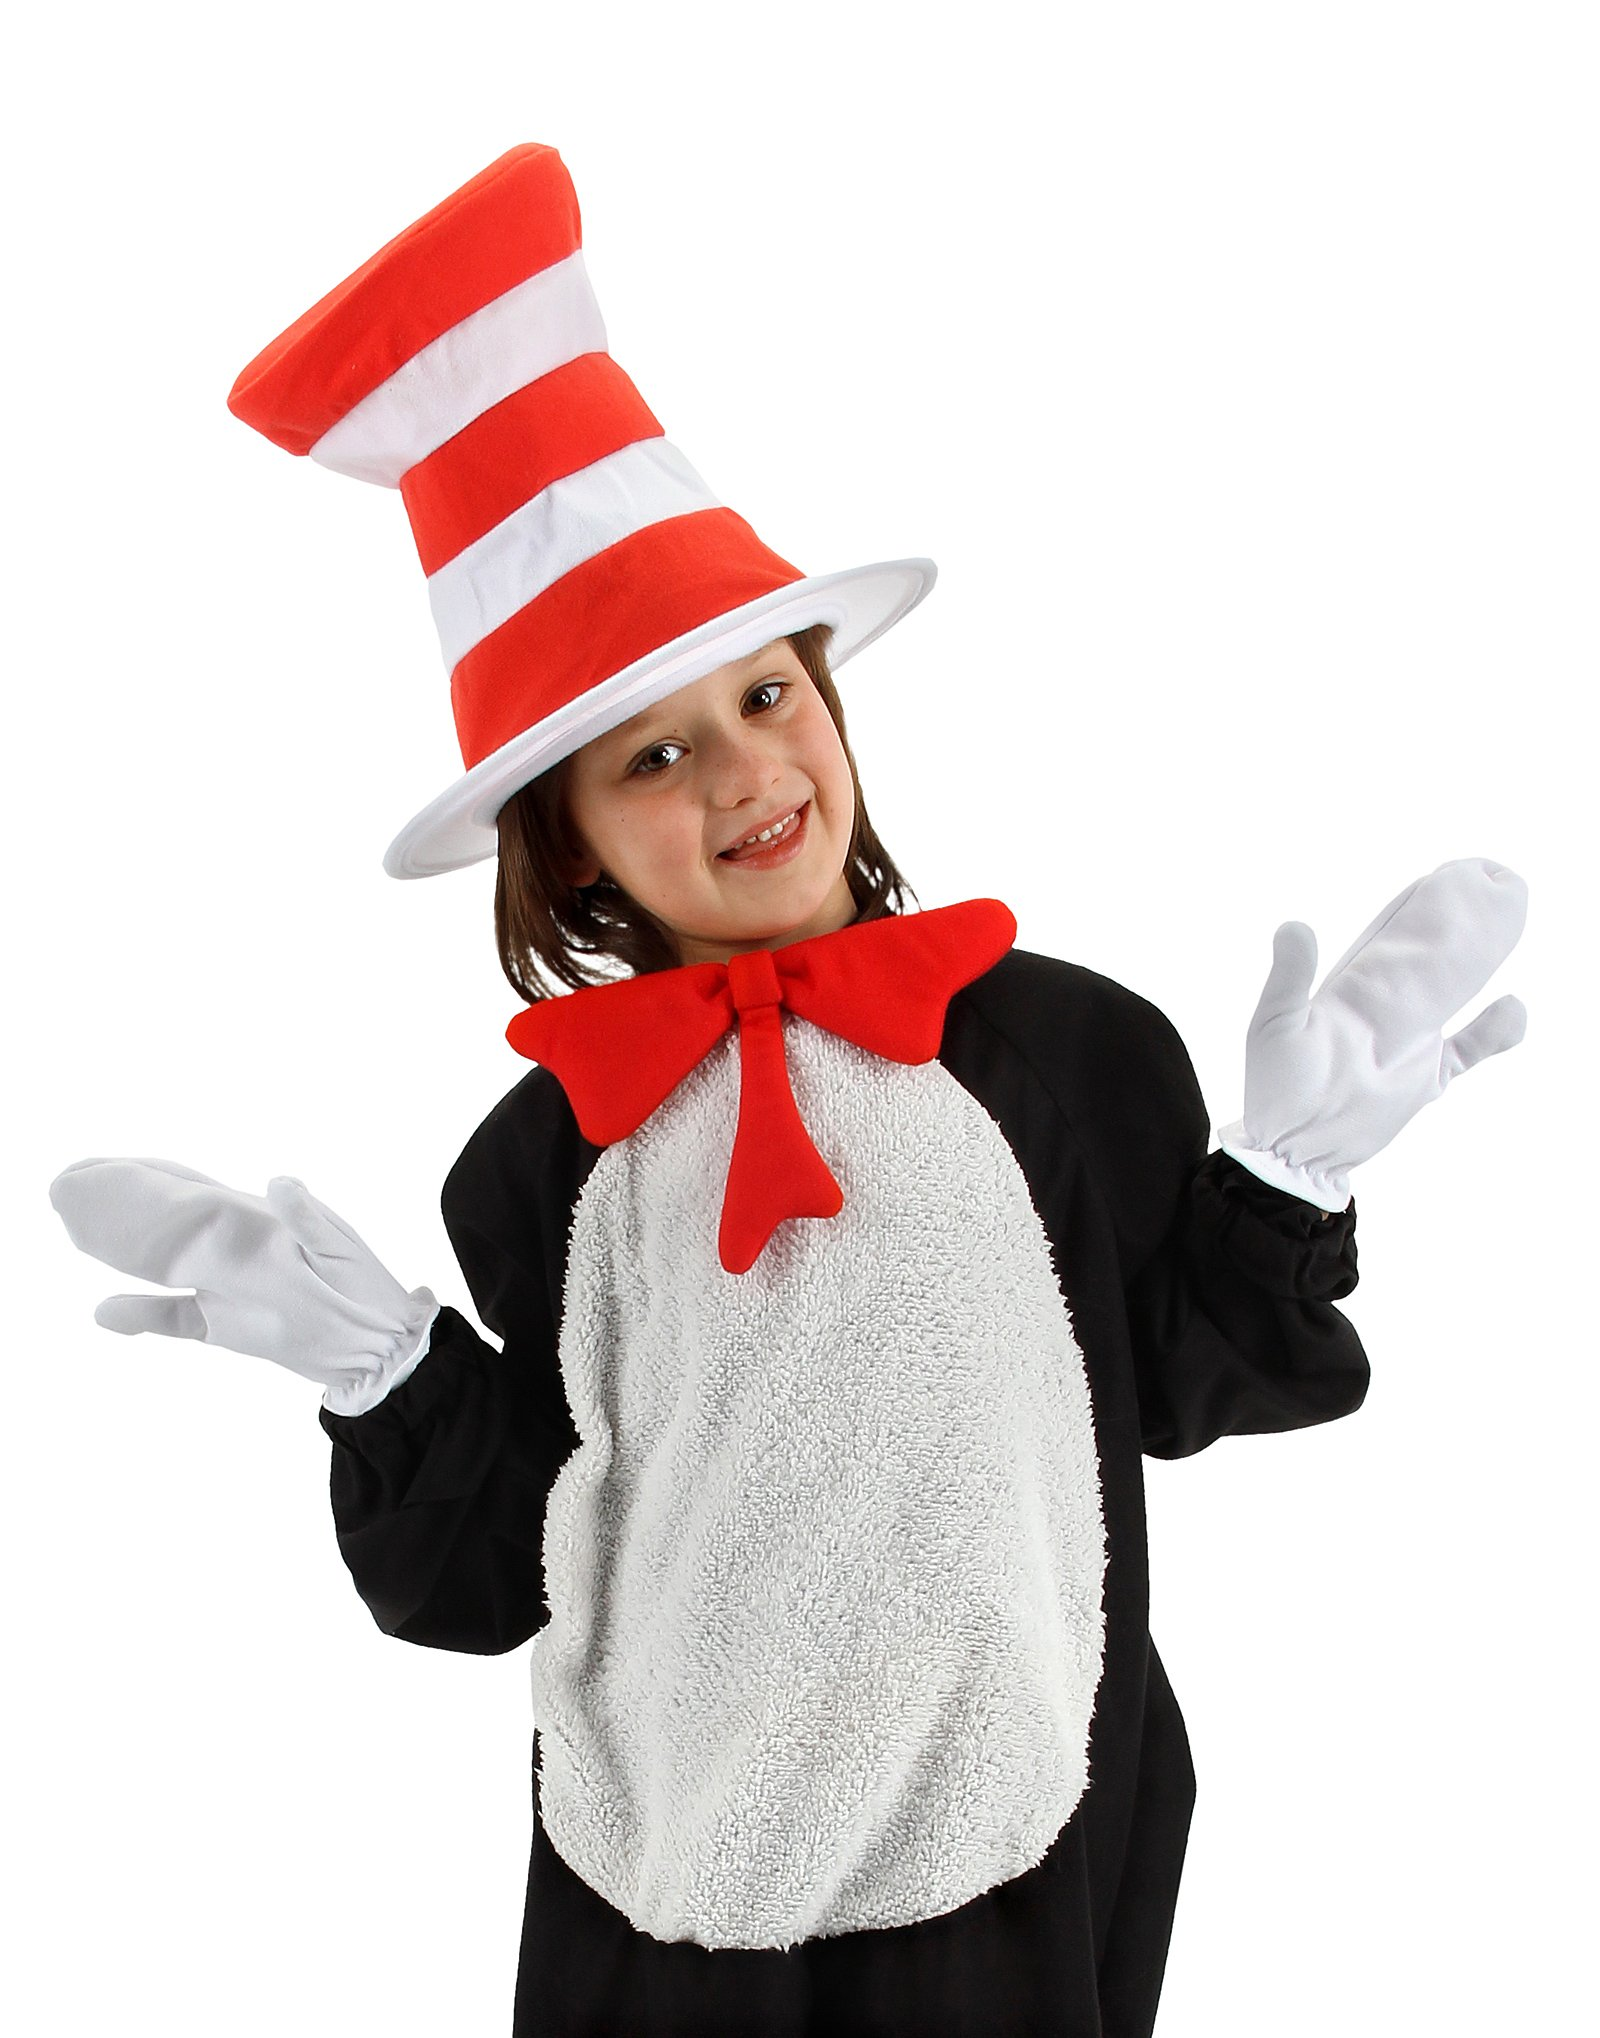 Dr. Seuss The Cat in the Hat - The Cat in the Hat Accessory Kit